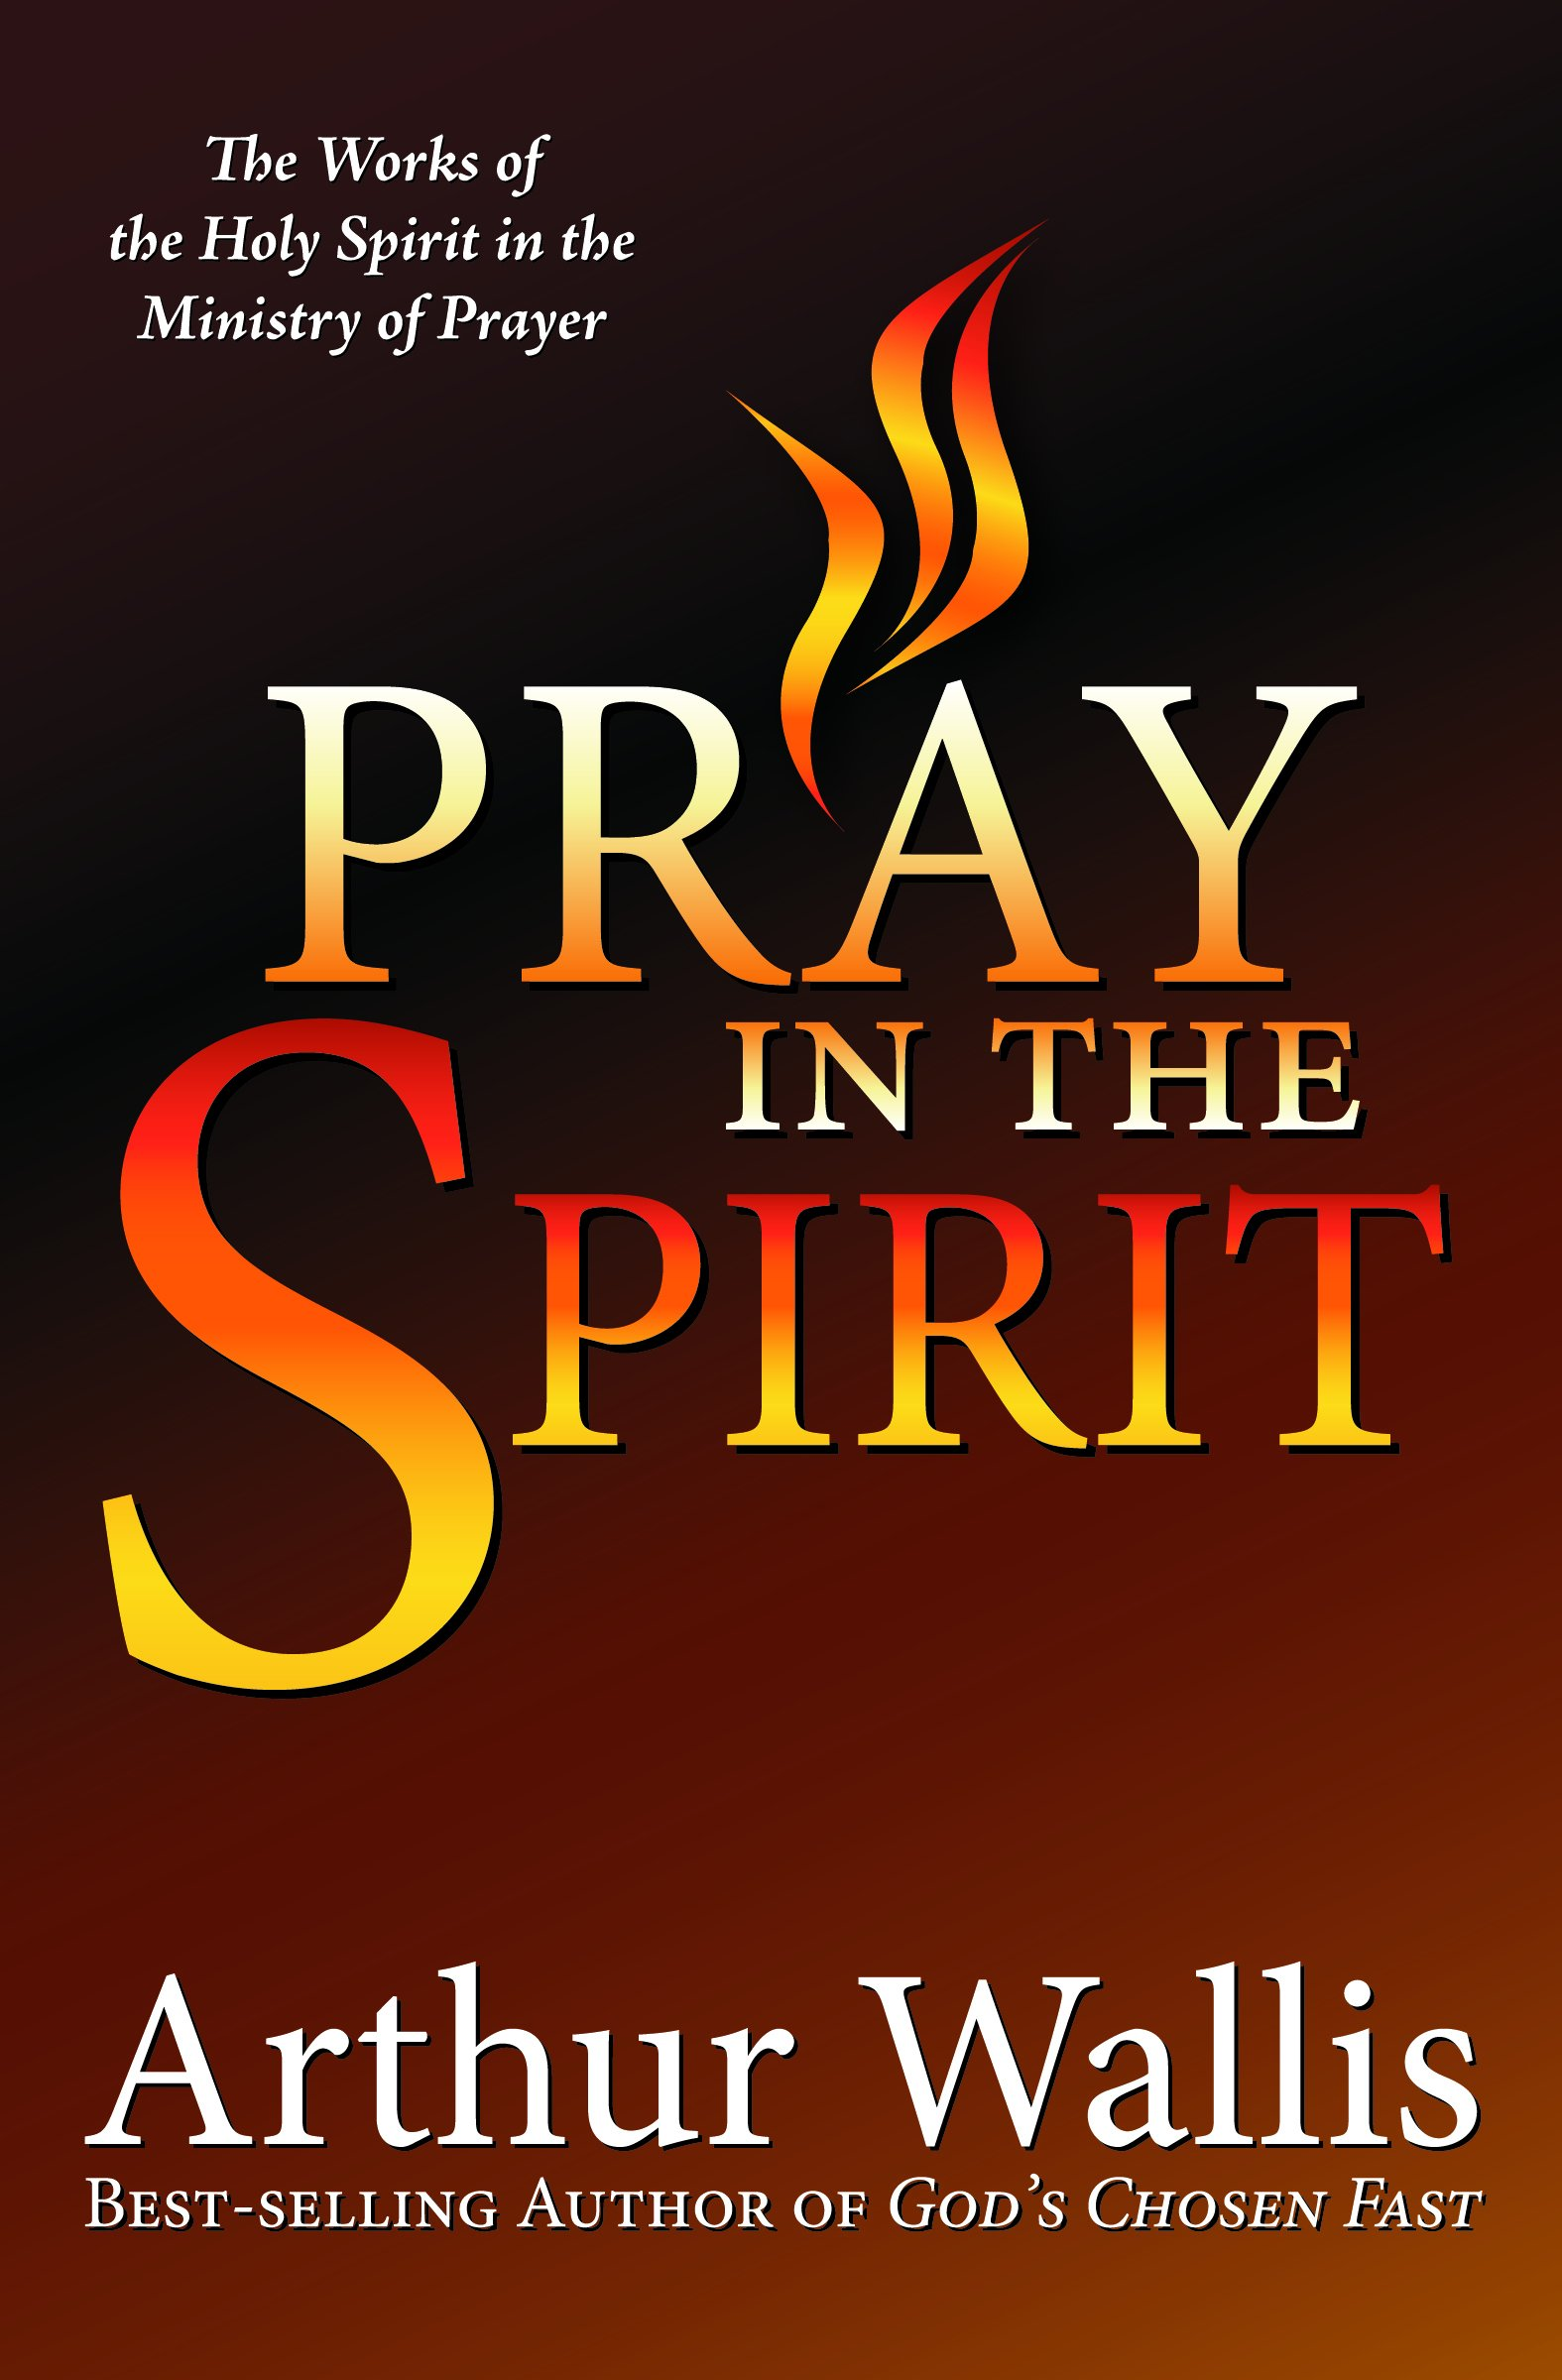 Pray in the spirit the work of the holy spirit in the ministry of pray in the spirit the work of the holy spirit in the ministry of prayer arthur wallis 9780875085746 amazon books thecheapjerseys Gallery